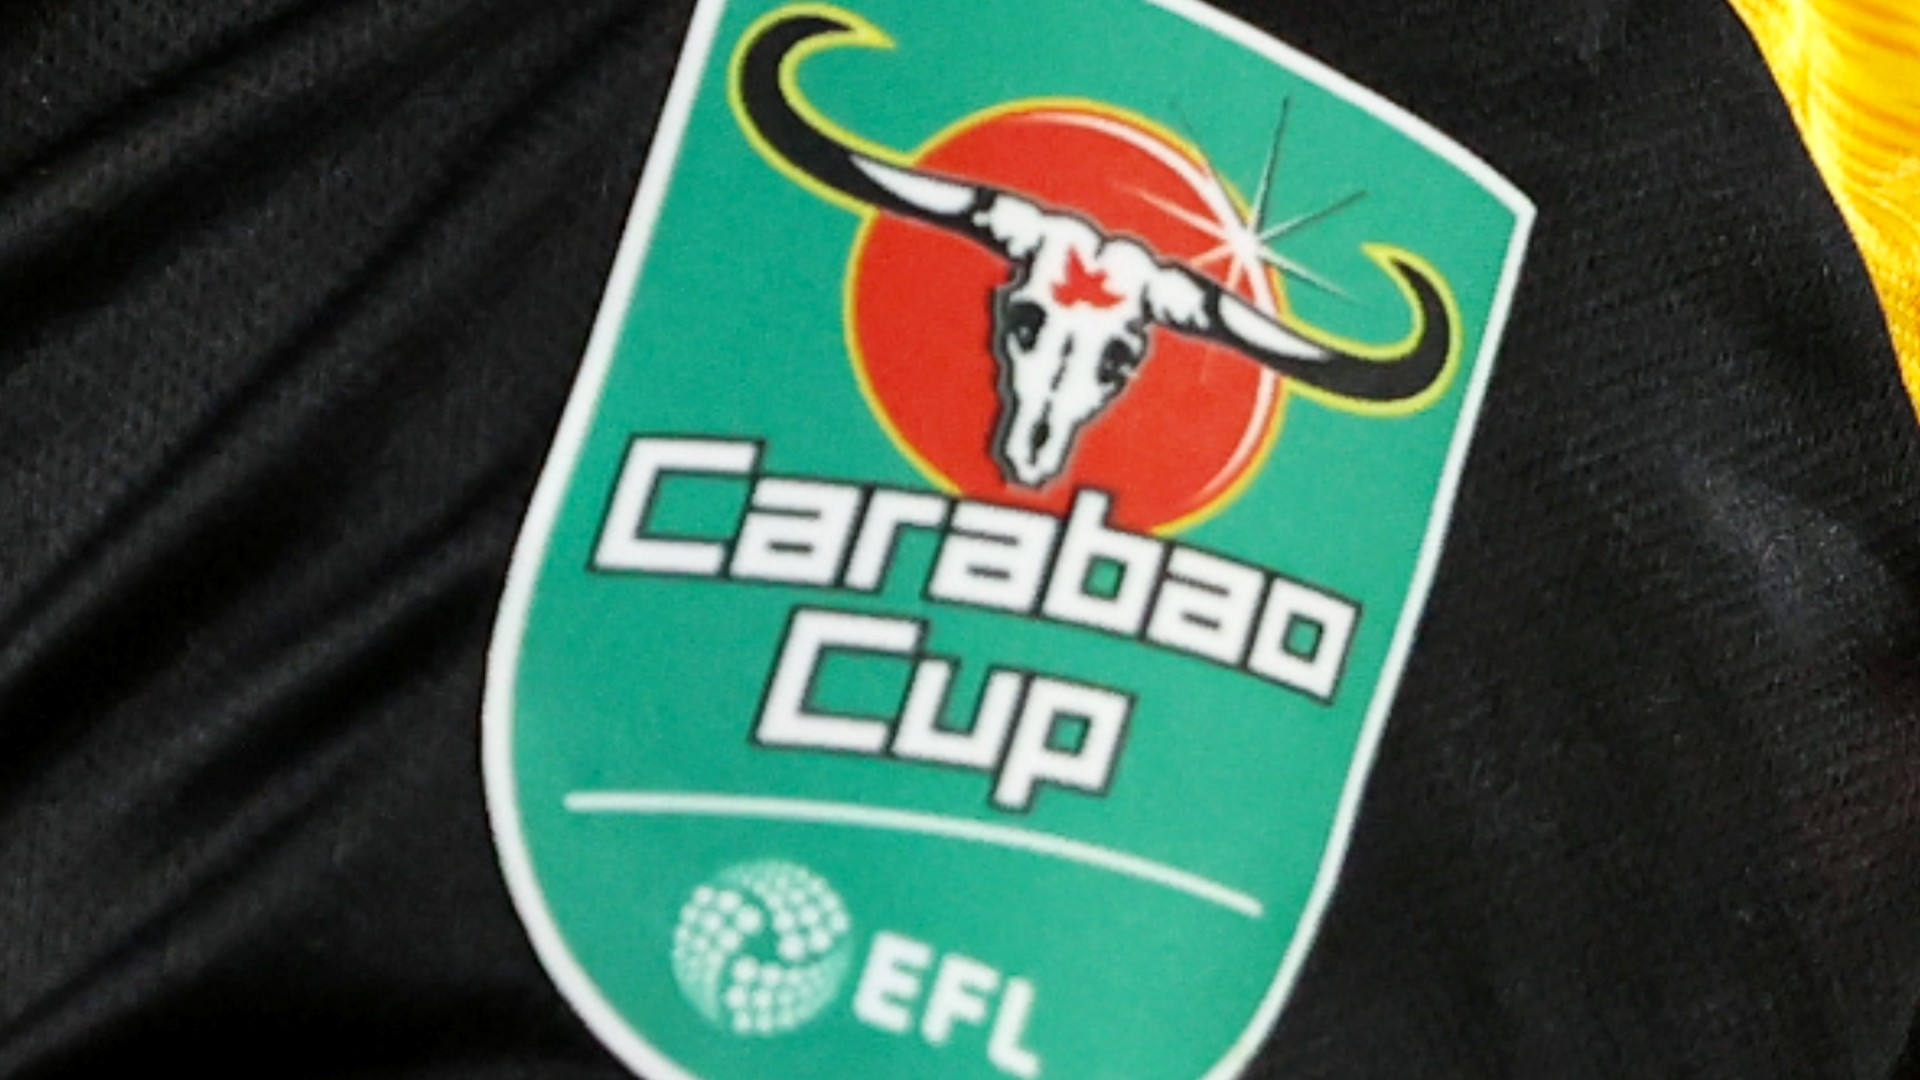 How to watch Carabao Cup: Draws, fixtures for Chelsea, Arsenal, Liverpool in 2021-2022 League Cup